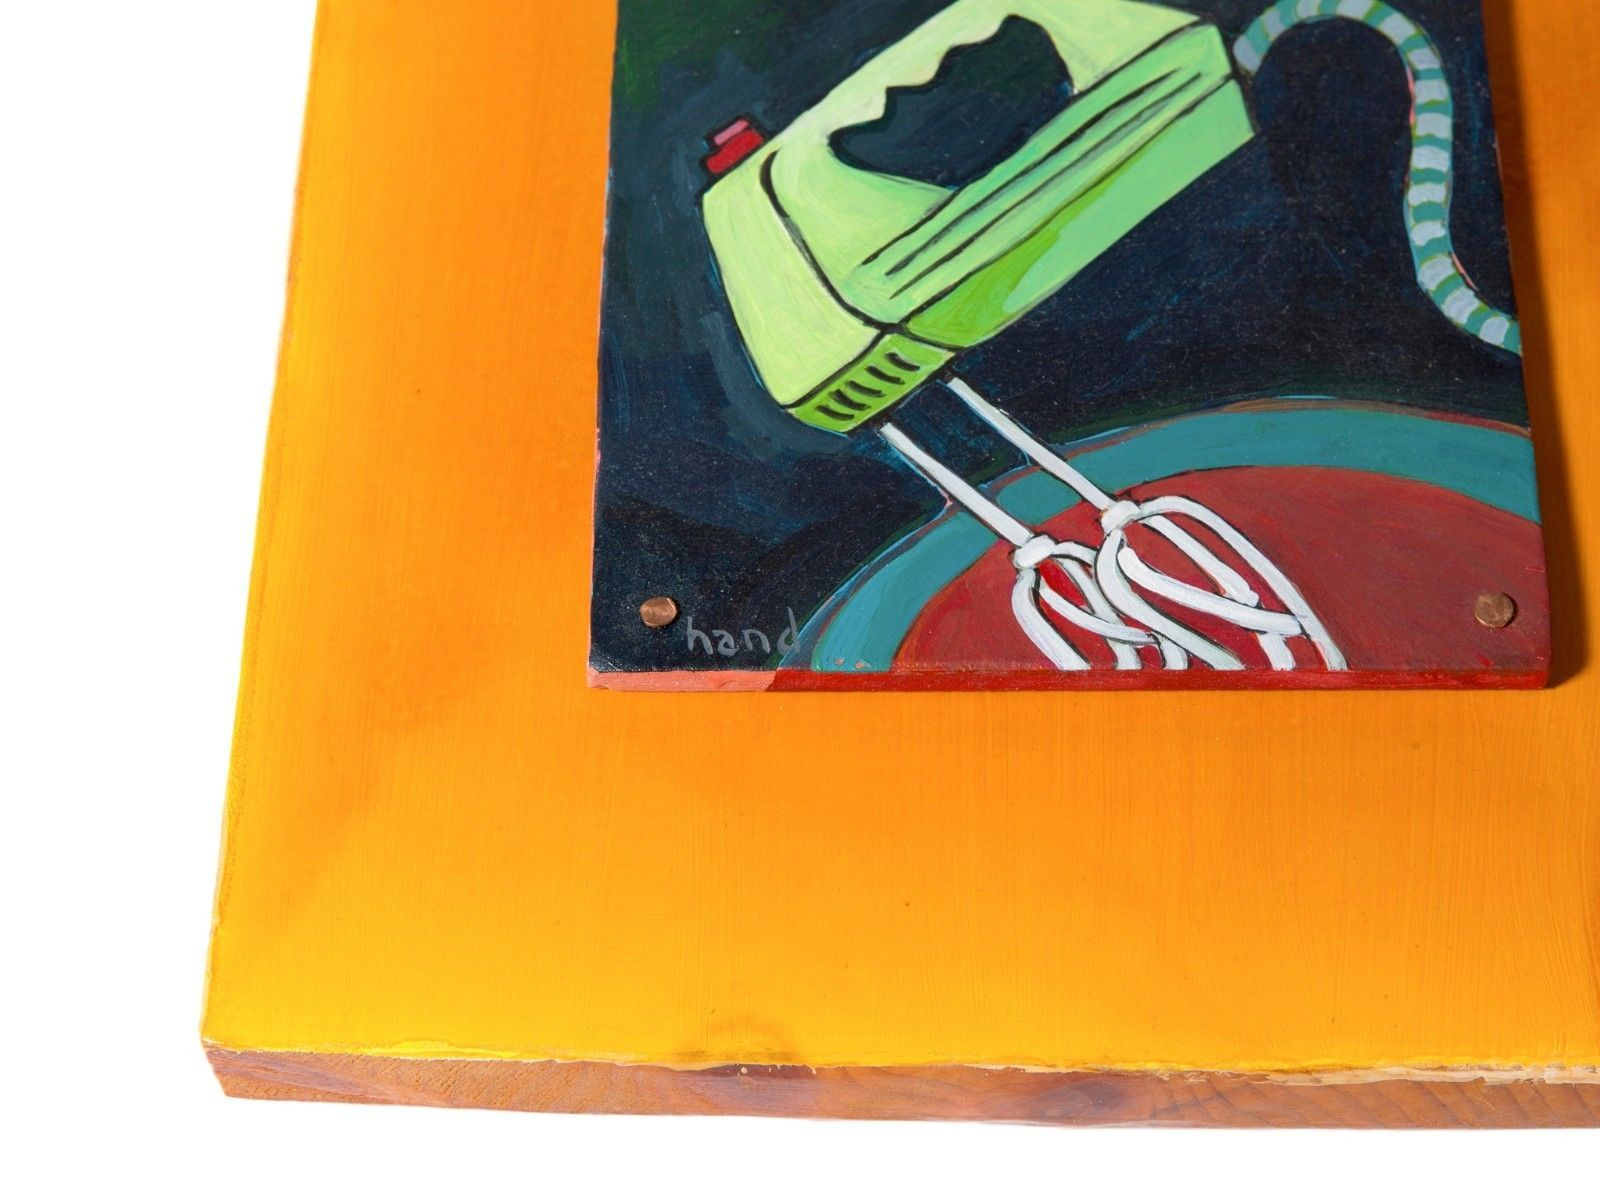 FREE SHIP: Kitchen Art Painting on Wood - Colorful Painted Mixer by Jeff Hand